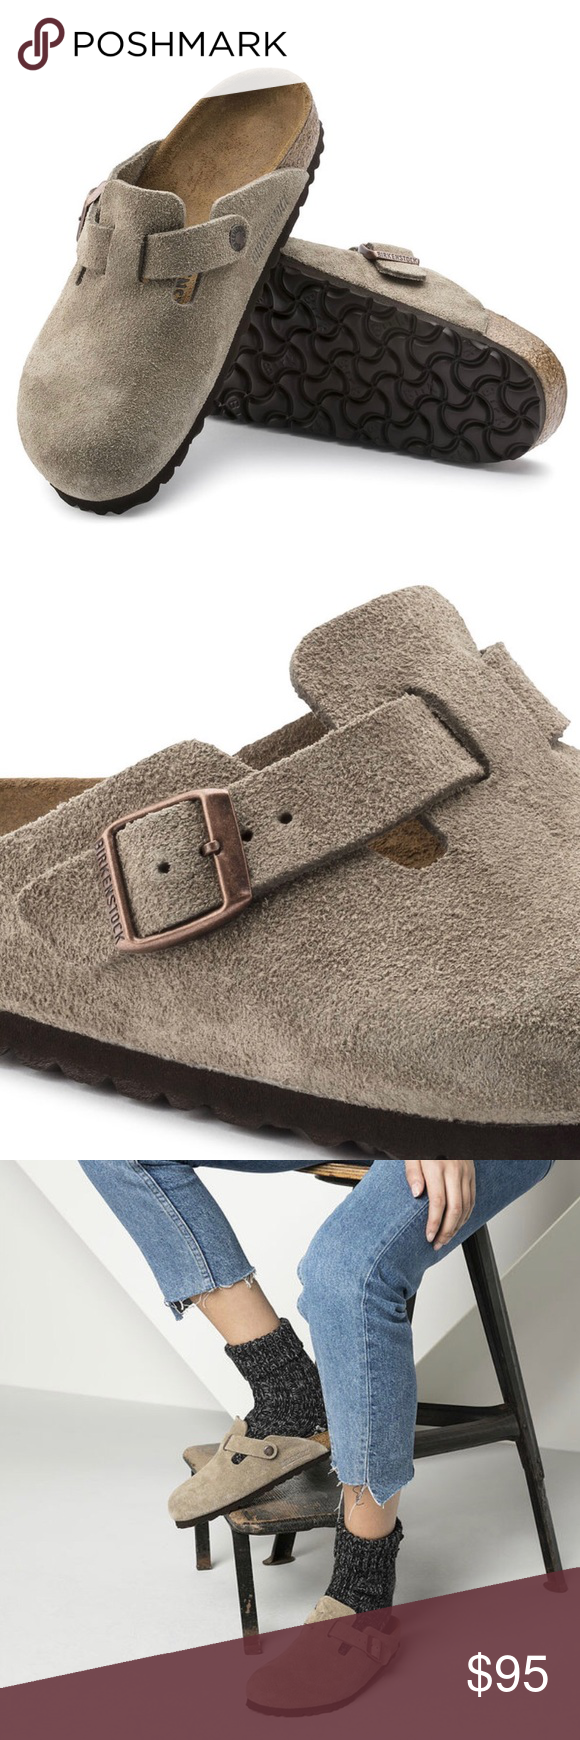 8e5b57b0a297 Birkenstock Boston clog taupe suede 39 regular Comfortable suede clogs